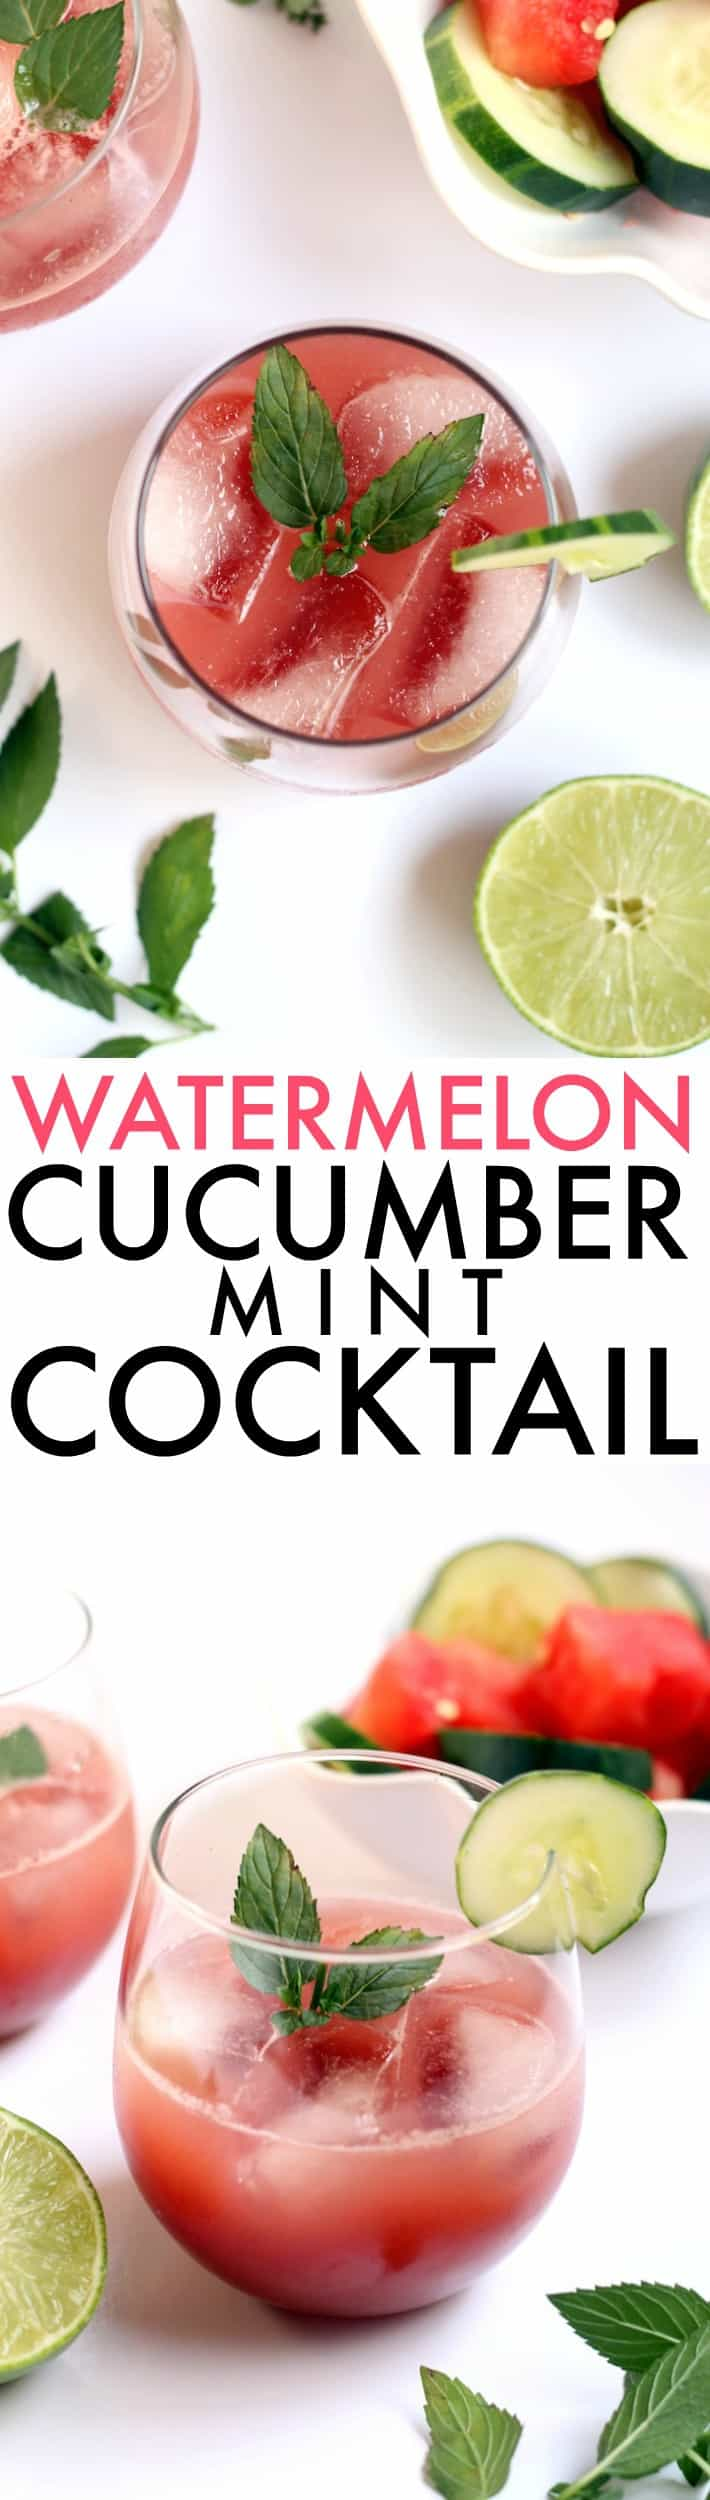 This refreshing, naturally sweetened Watermelon Cucumber Mint Cocktail  is just as delicious as it is healthy! Make a big batch for a relaxing evening with friends.